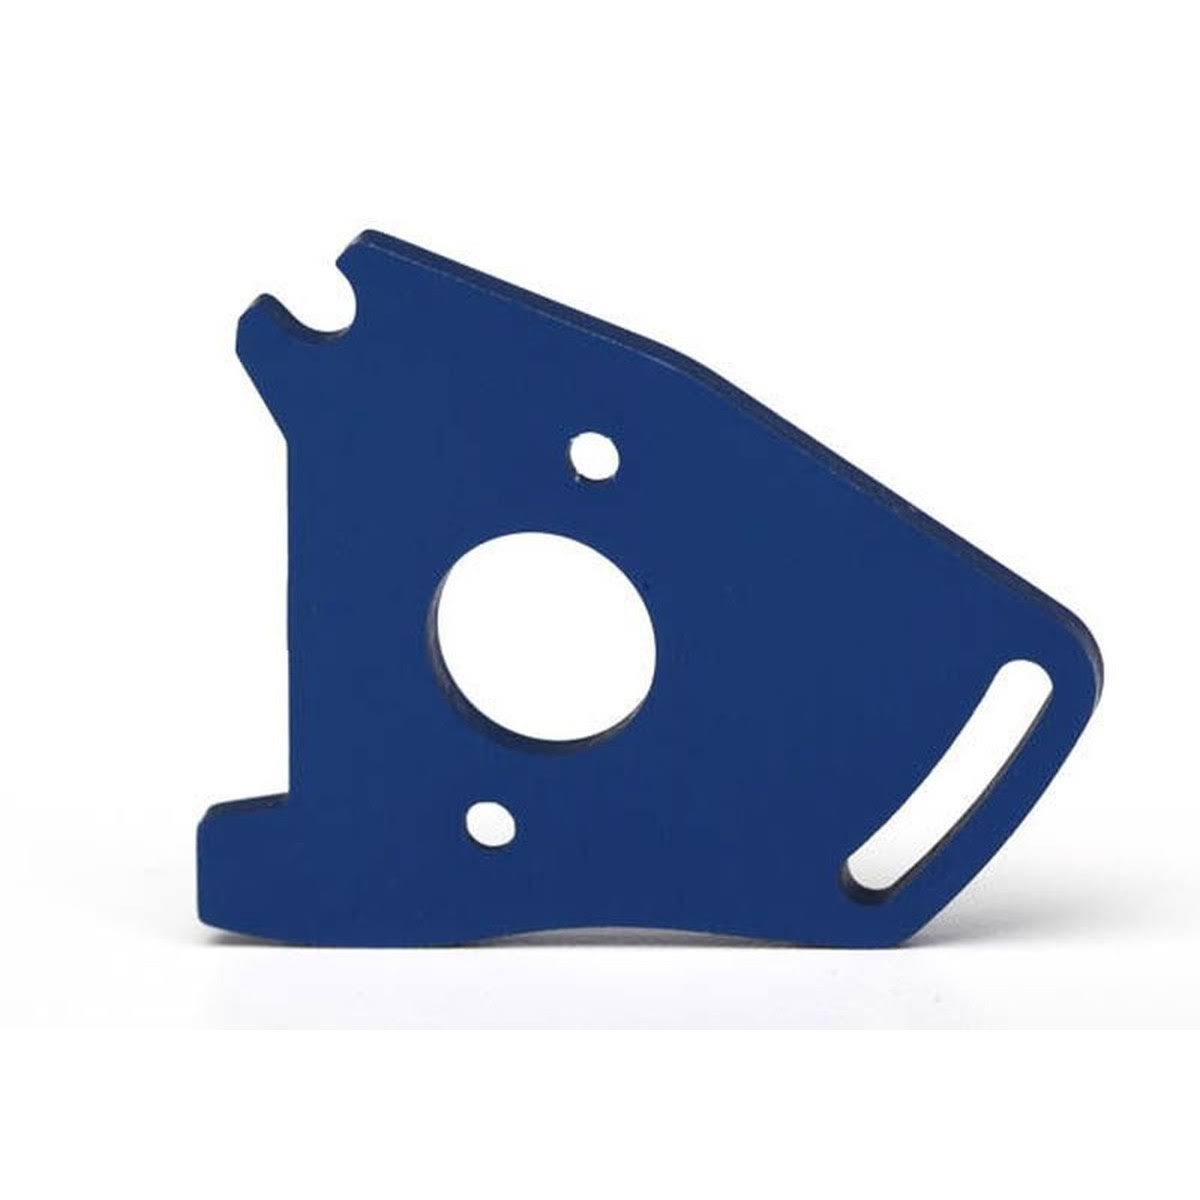 Traxxas Tra7490 Motor Plate Rally - 1/10, Blue